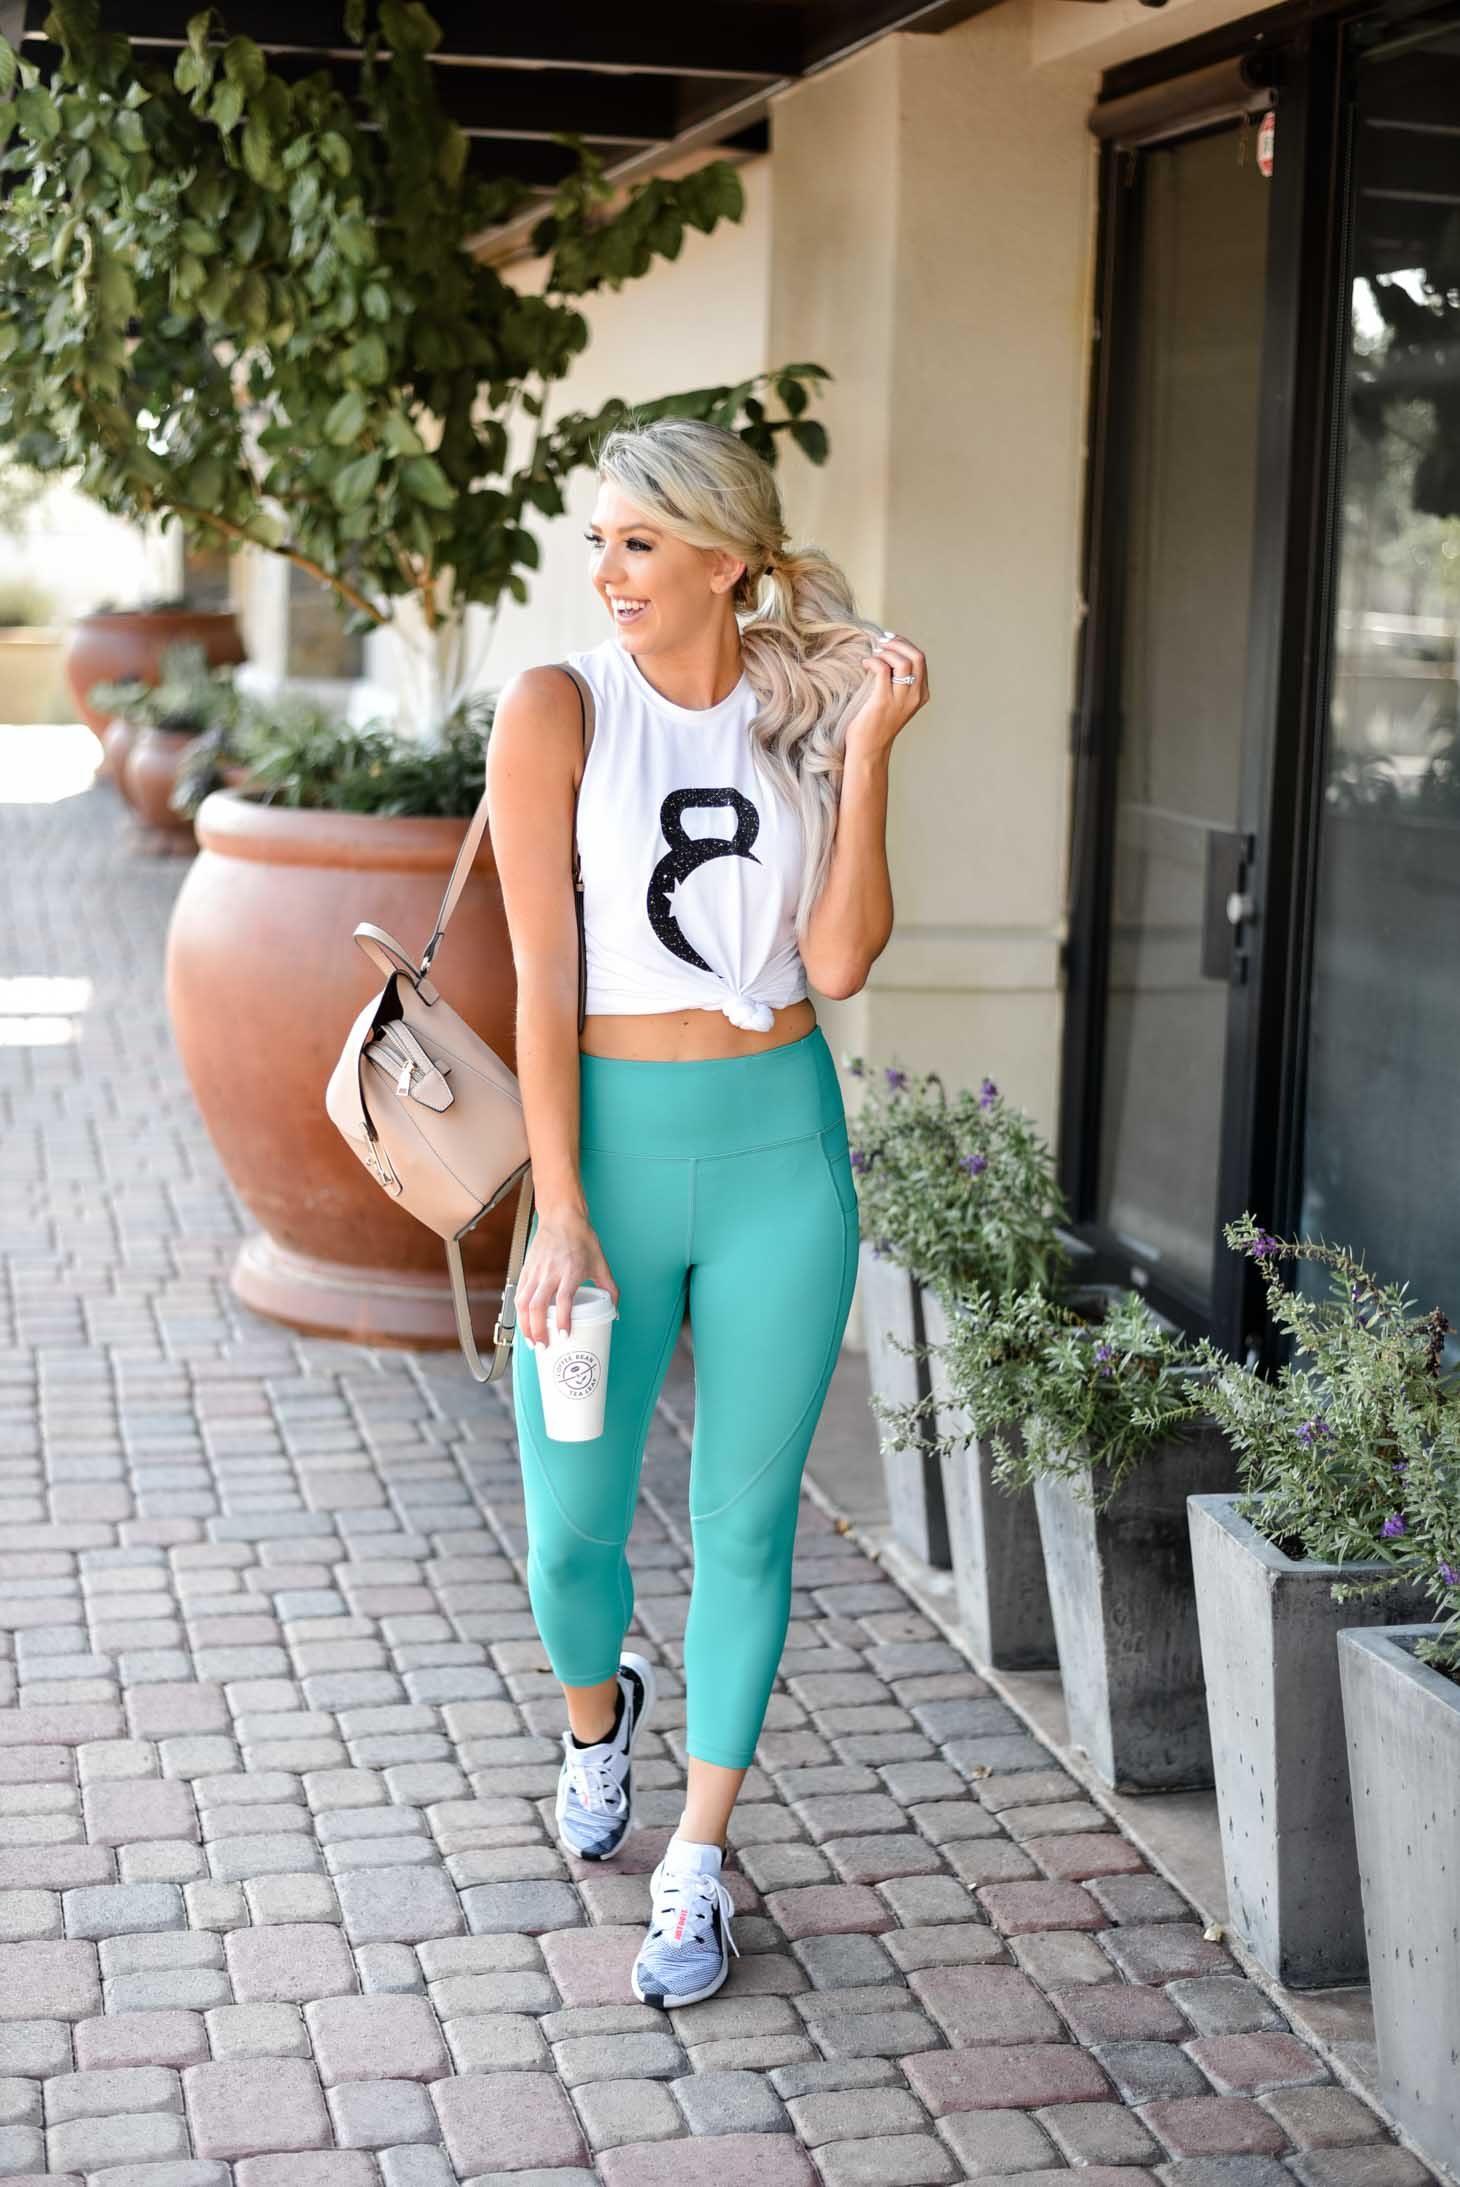 Erin Elizabeth of Wink and a Twirl shares the cutest new workout look from Zyia Fitness